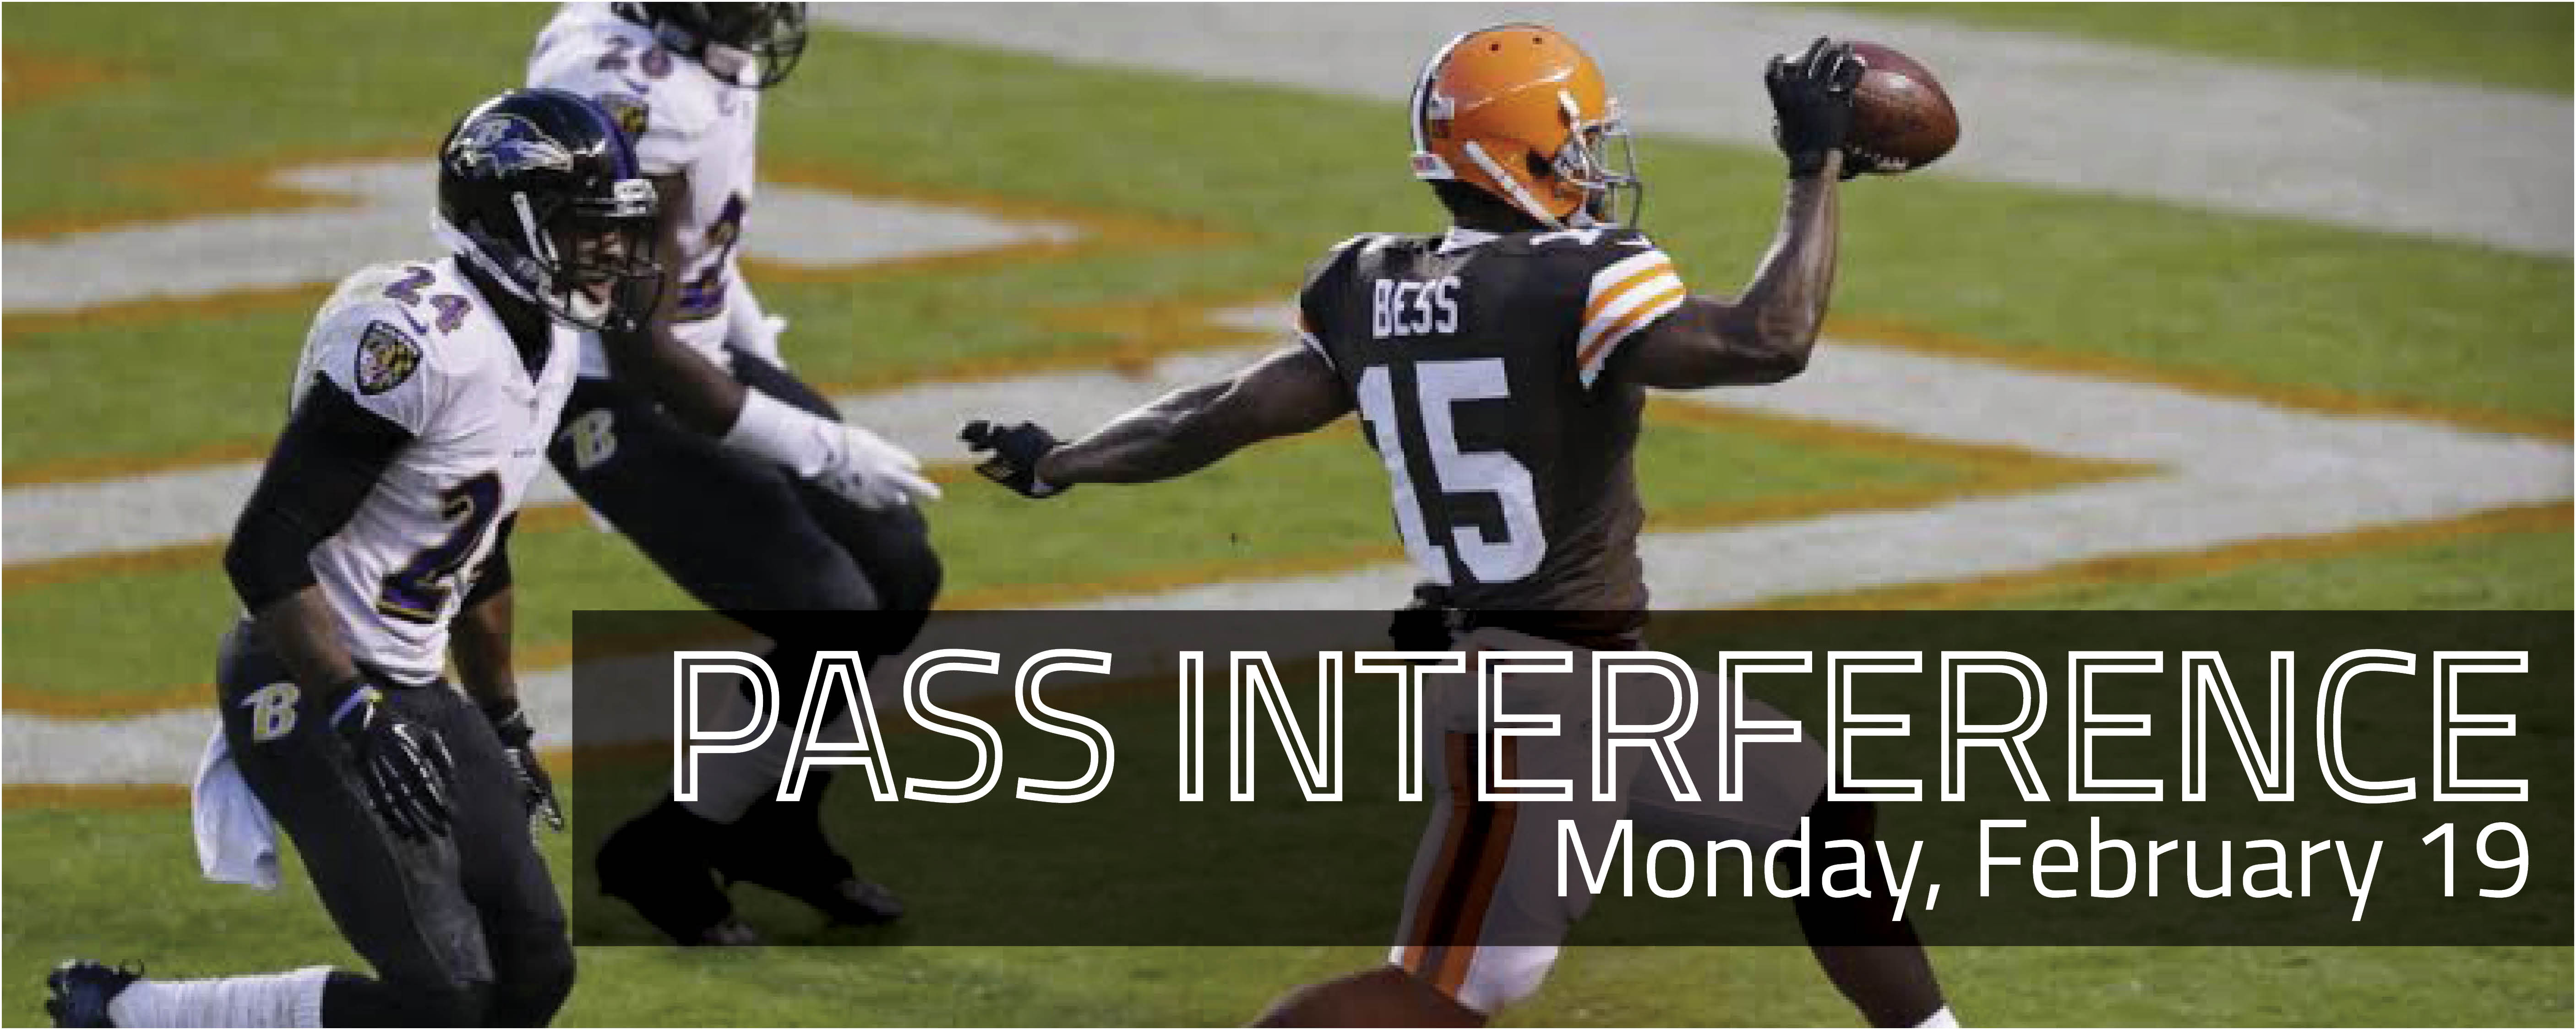 Pass Interference documentary showing on Monday, February 19